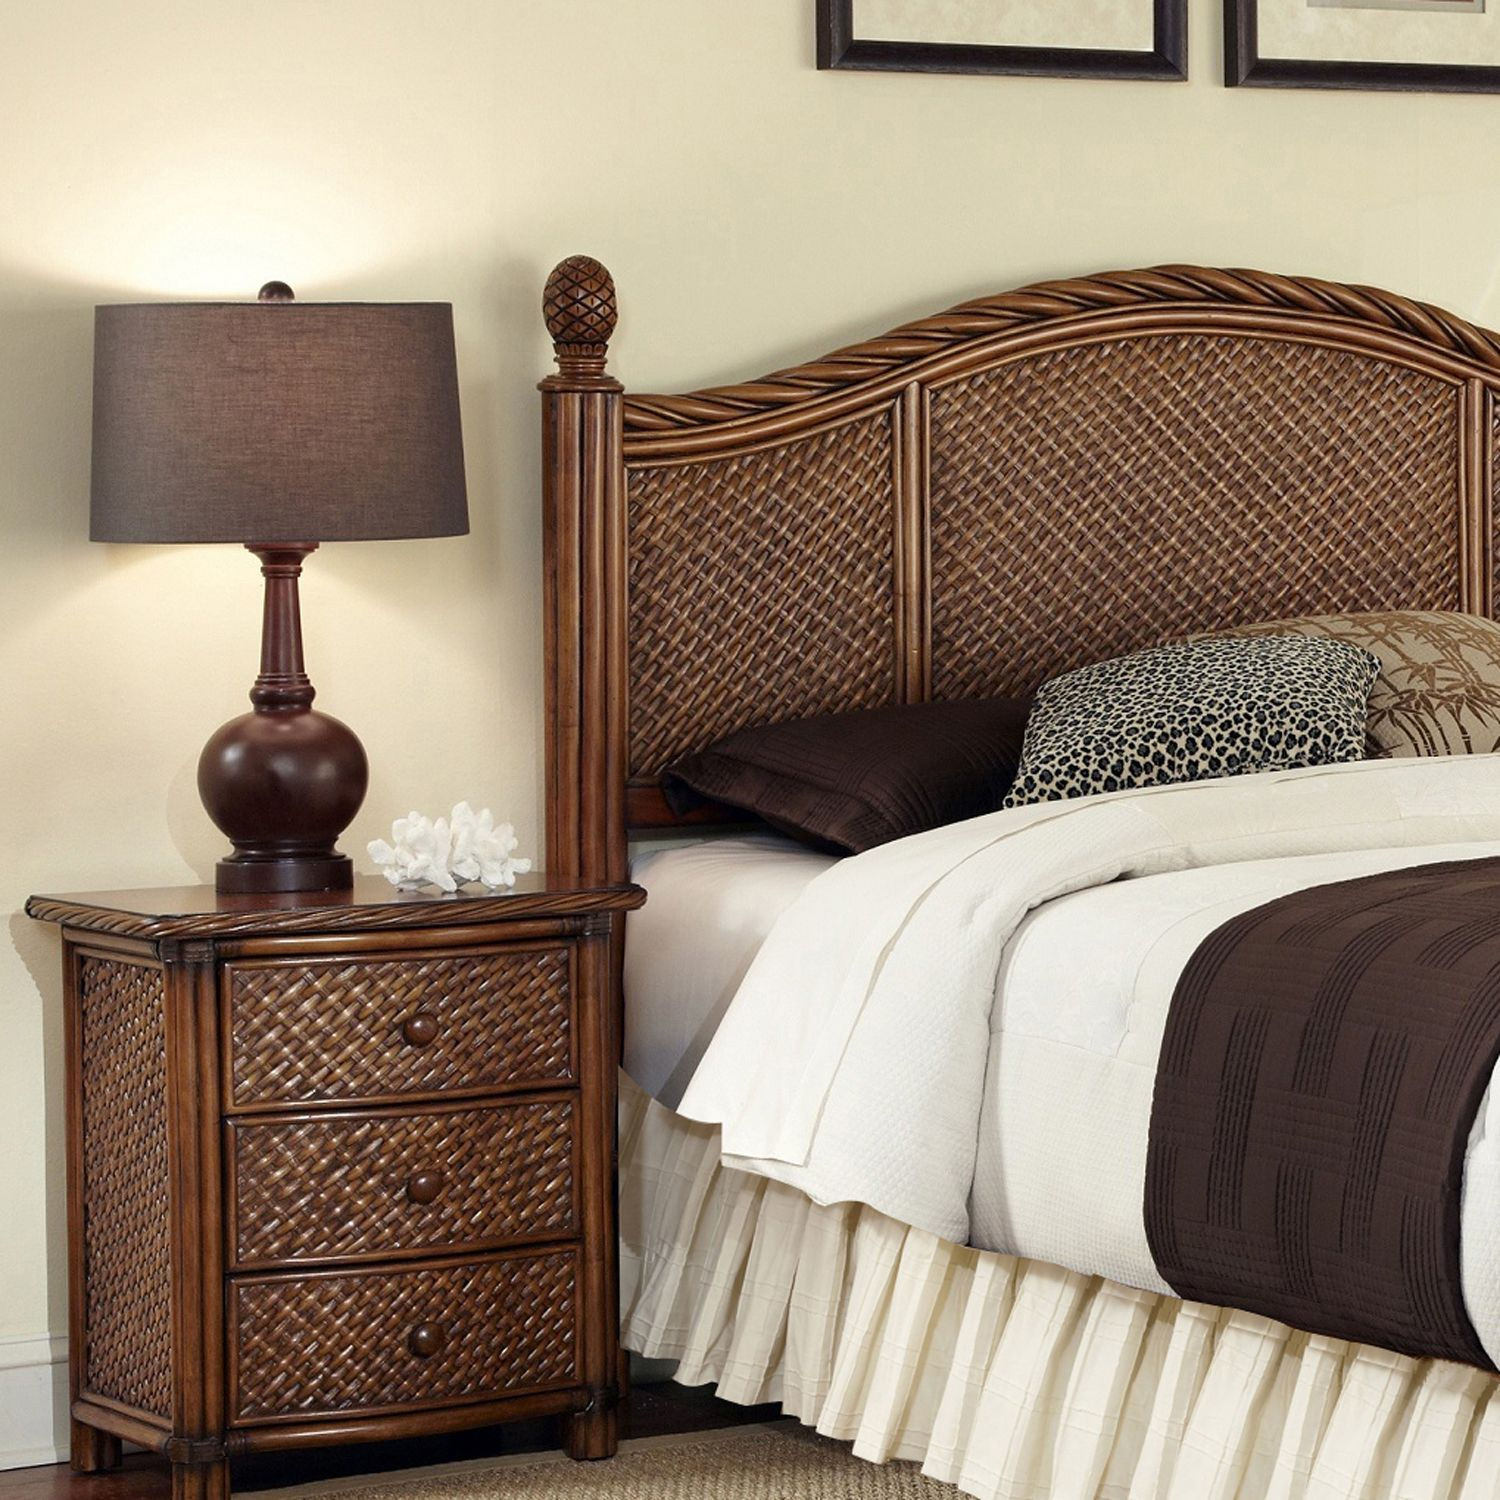 Ideal Queen Full Headboard u Nightstand Set